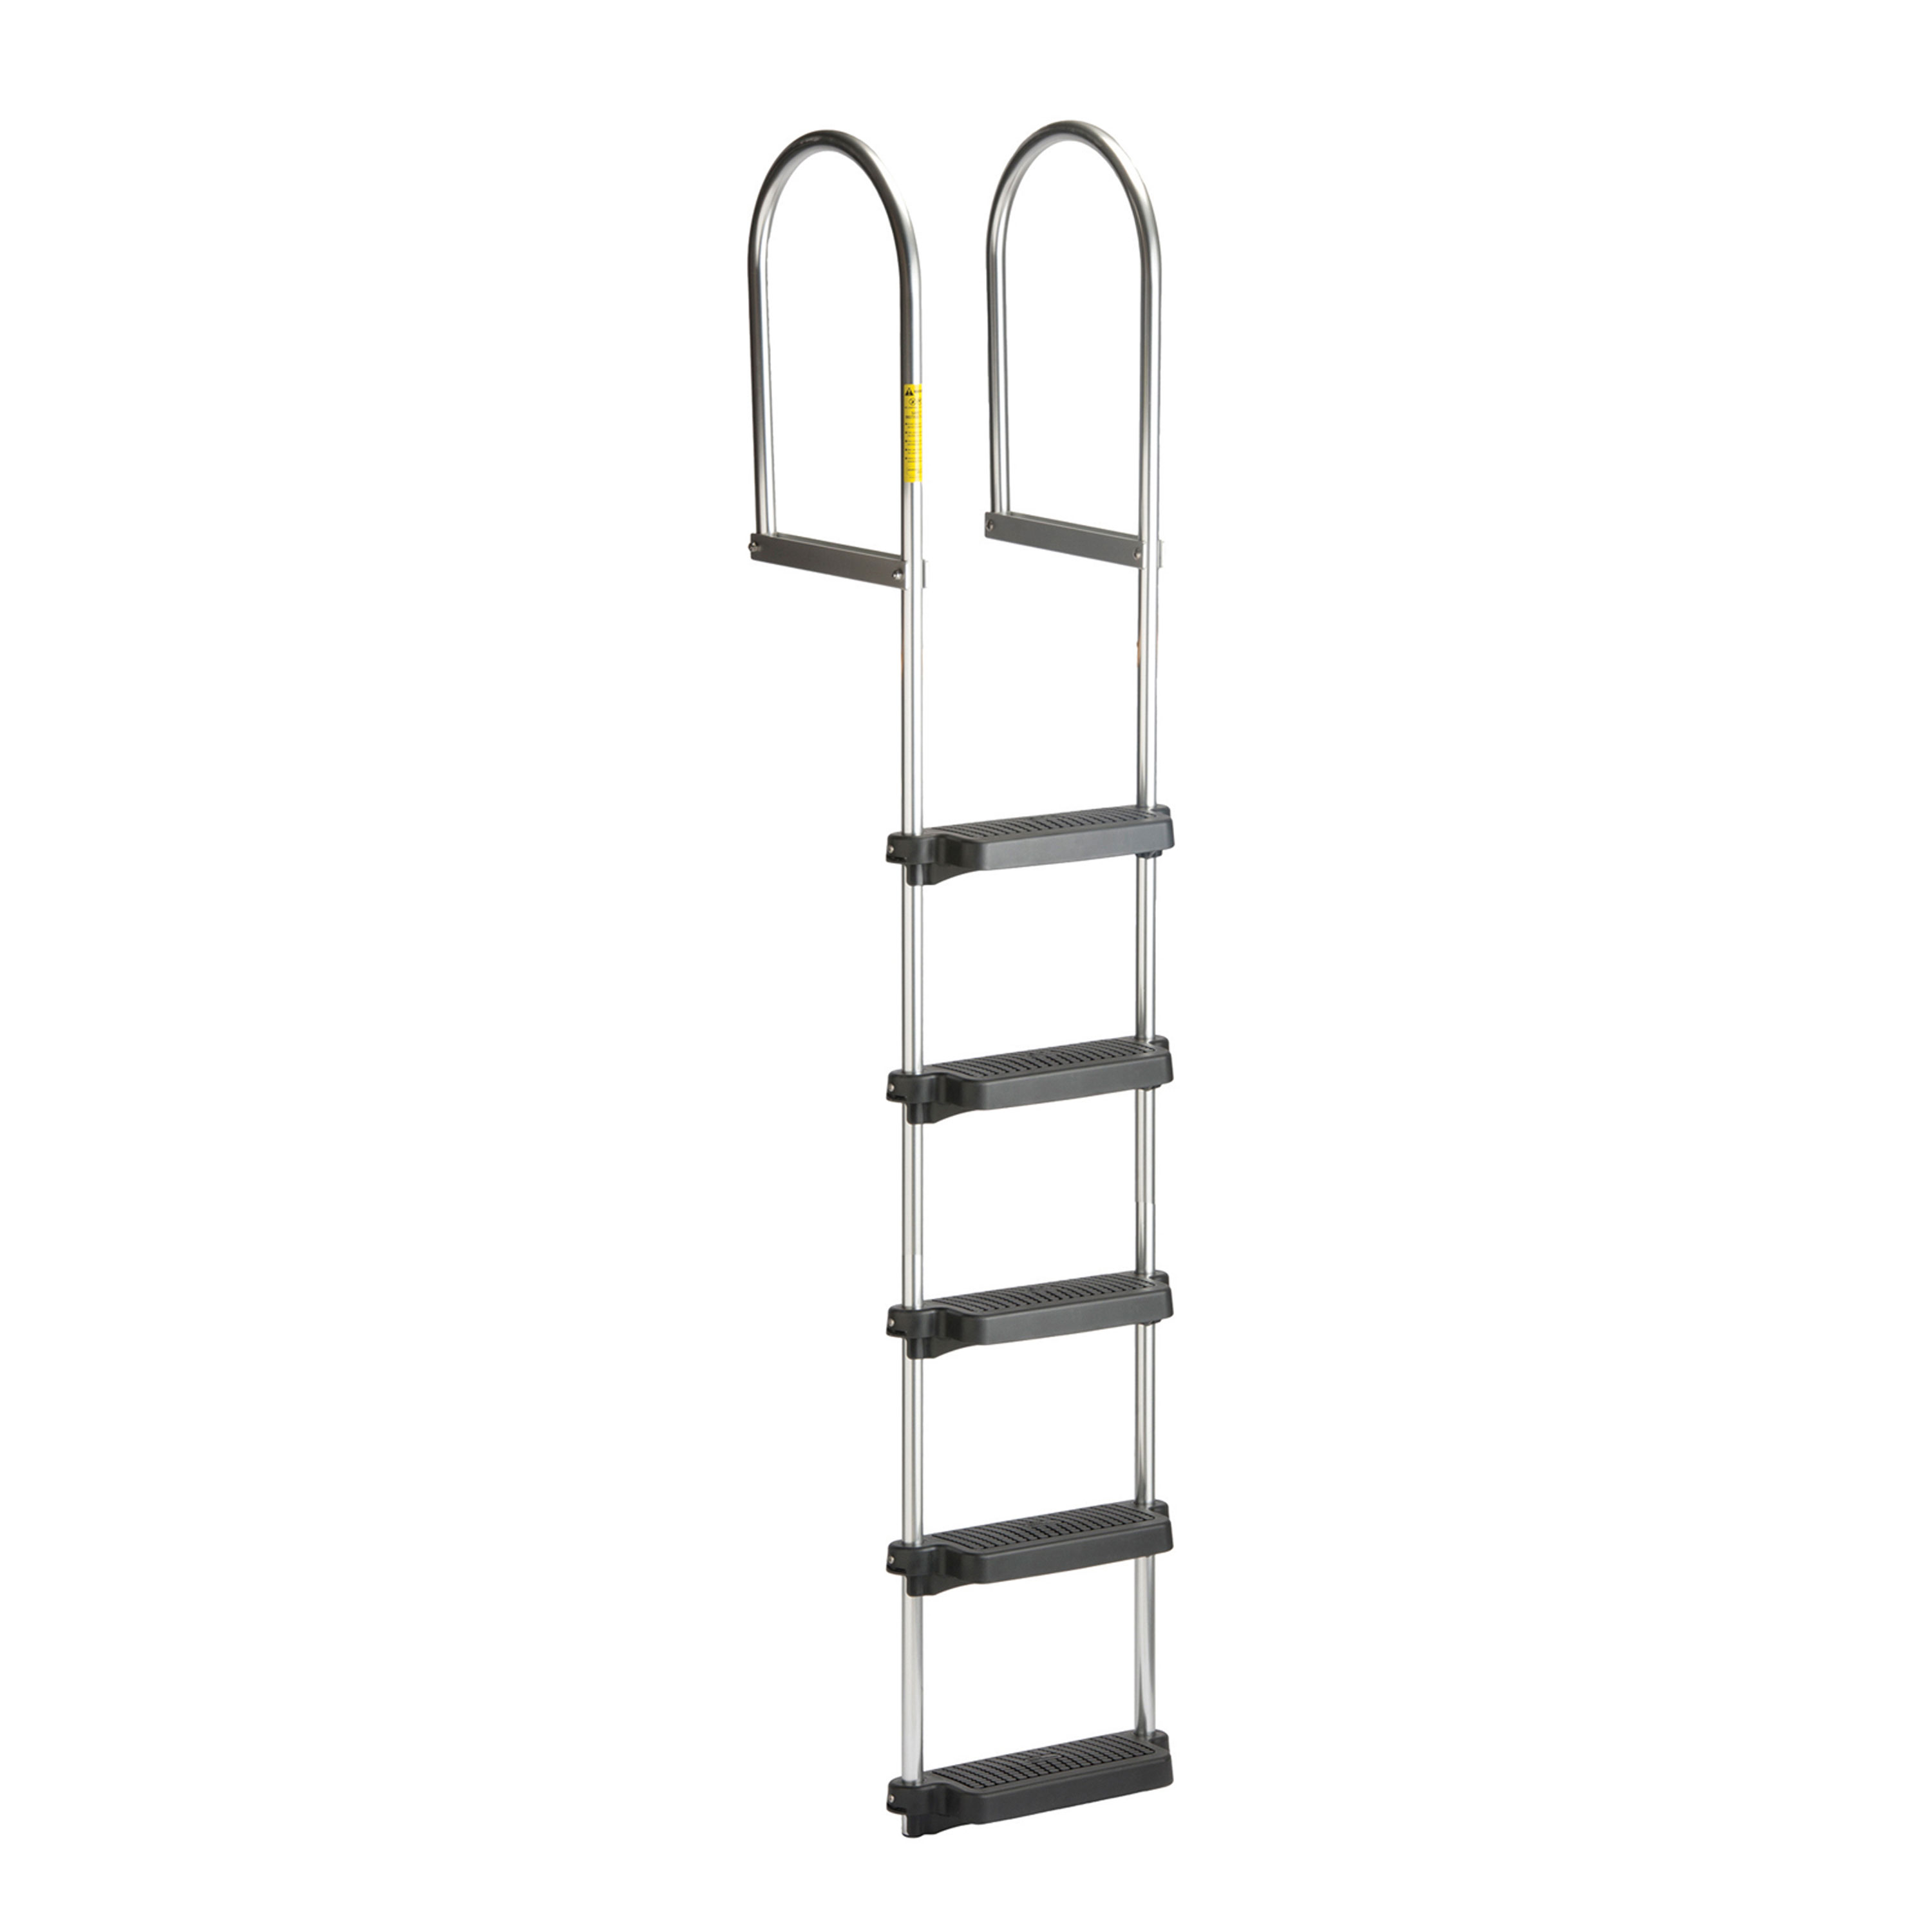 Garelick 15450:01 EEz-In Dock/Raft Ladder, Fixed with Poly